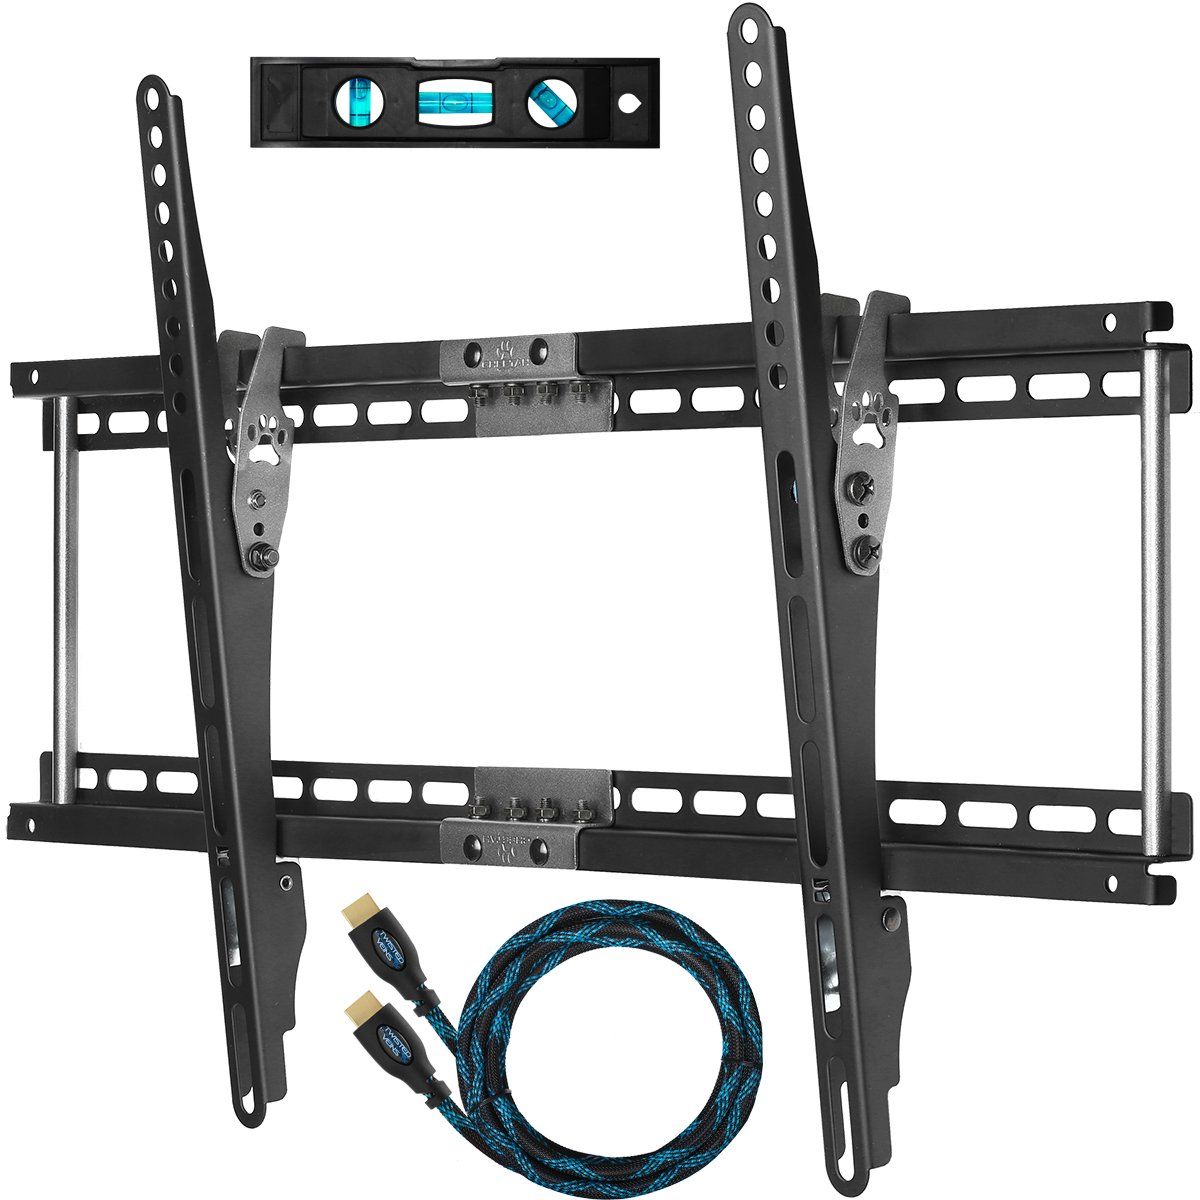 "Cheetah Mounts APTMM2B TV Wall Mount for 32-65"" TVs Bundle with 10-feet Braided HDMI Cable and a 6 Inch, 3-Axis Magnetic Bubble"